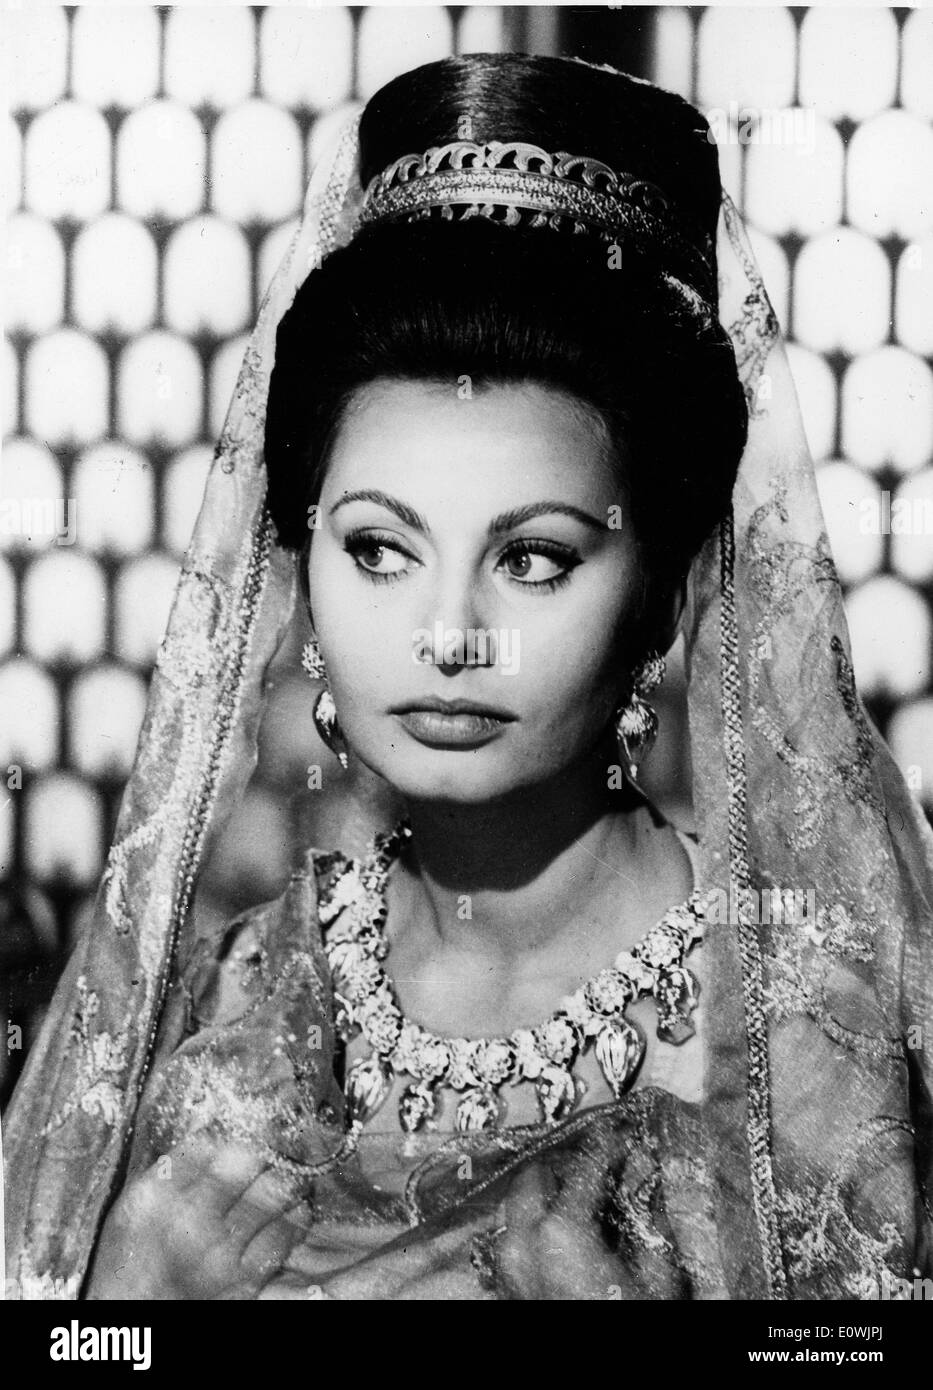 Actress Sophia Loren in the film 'The Fall of the Roman Empire' - Stock Image